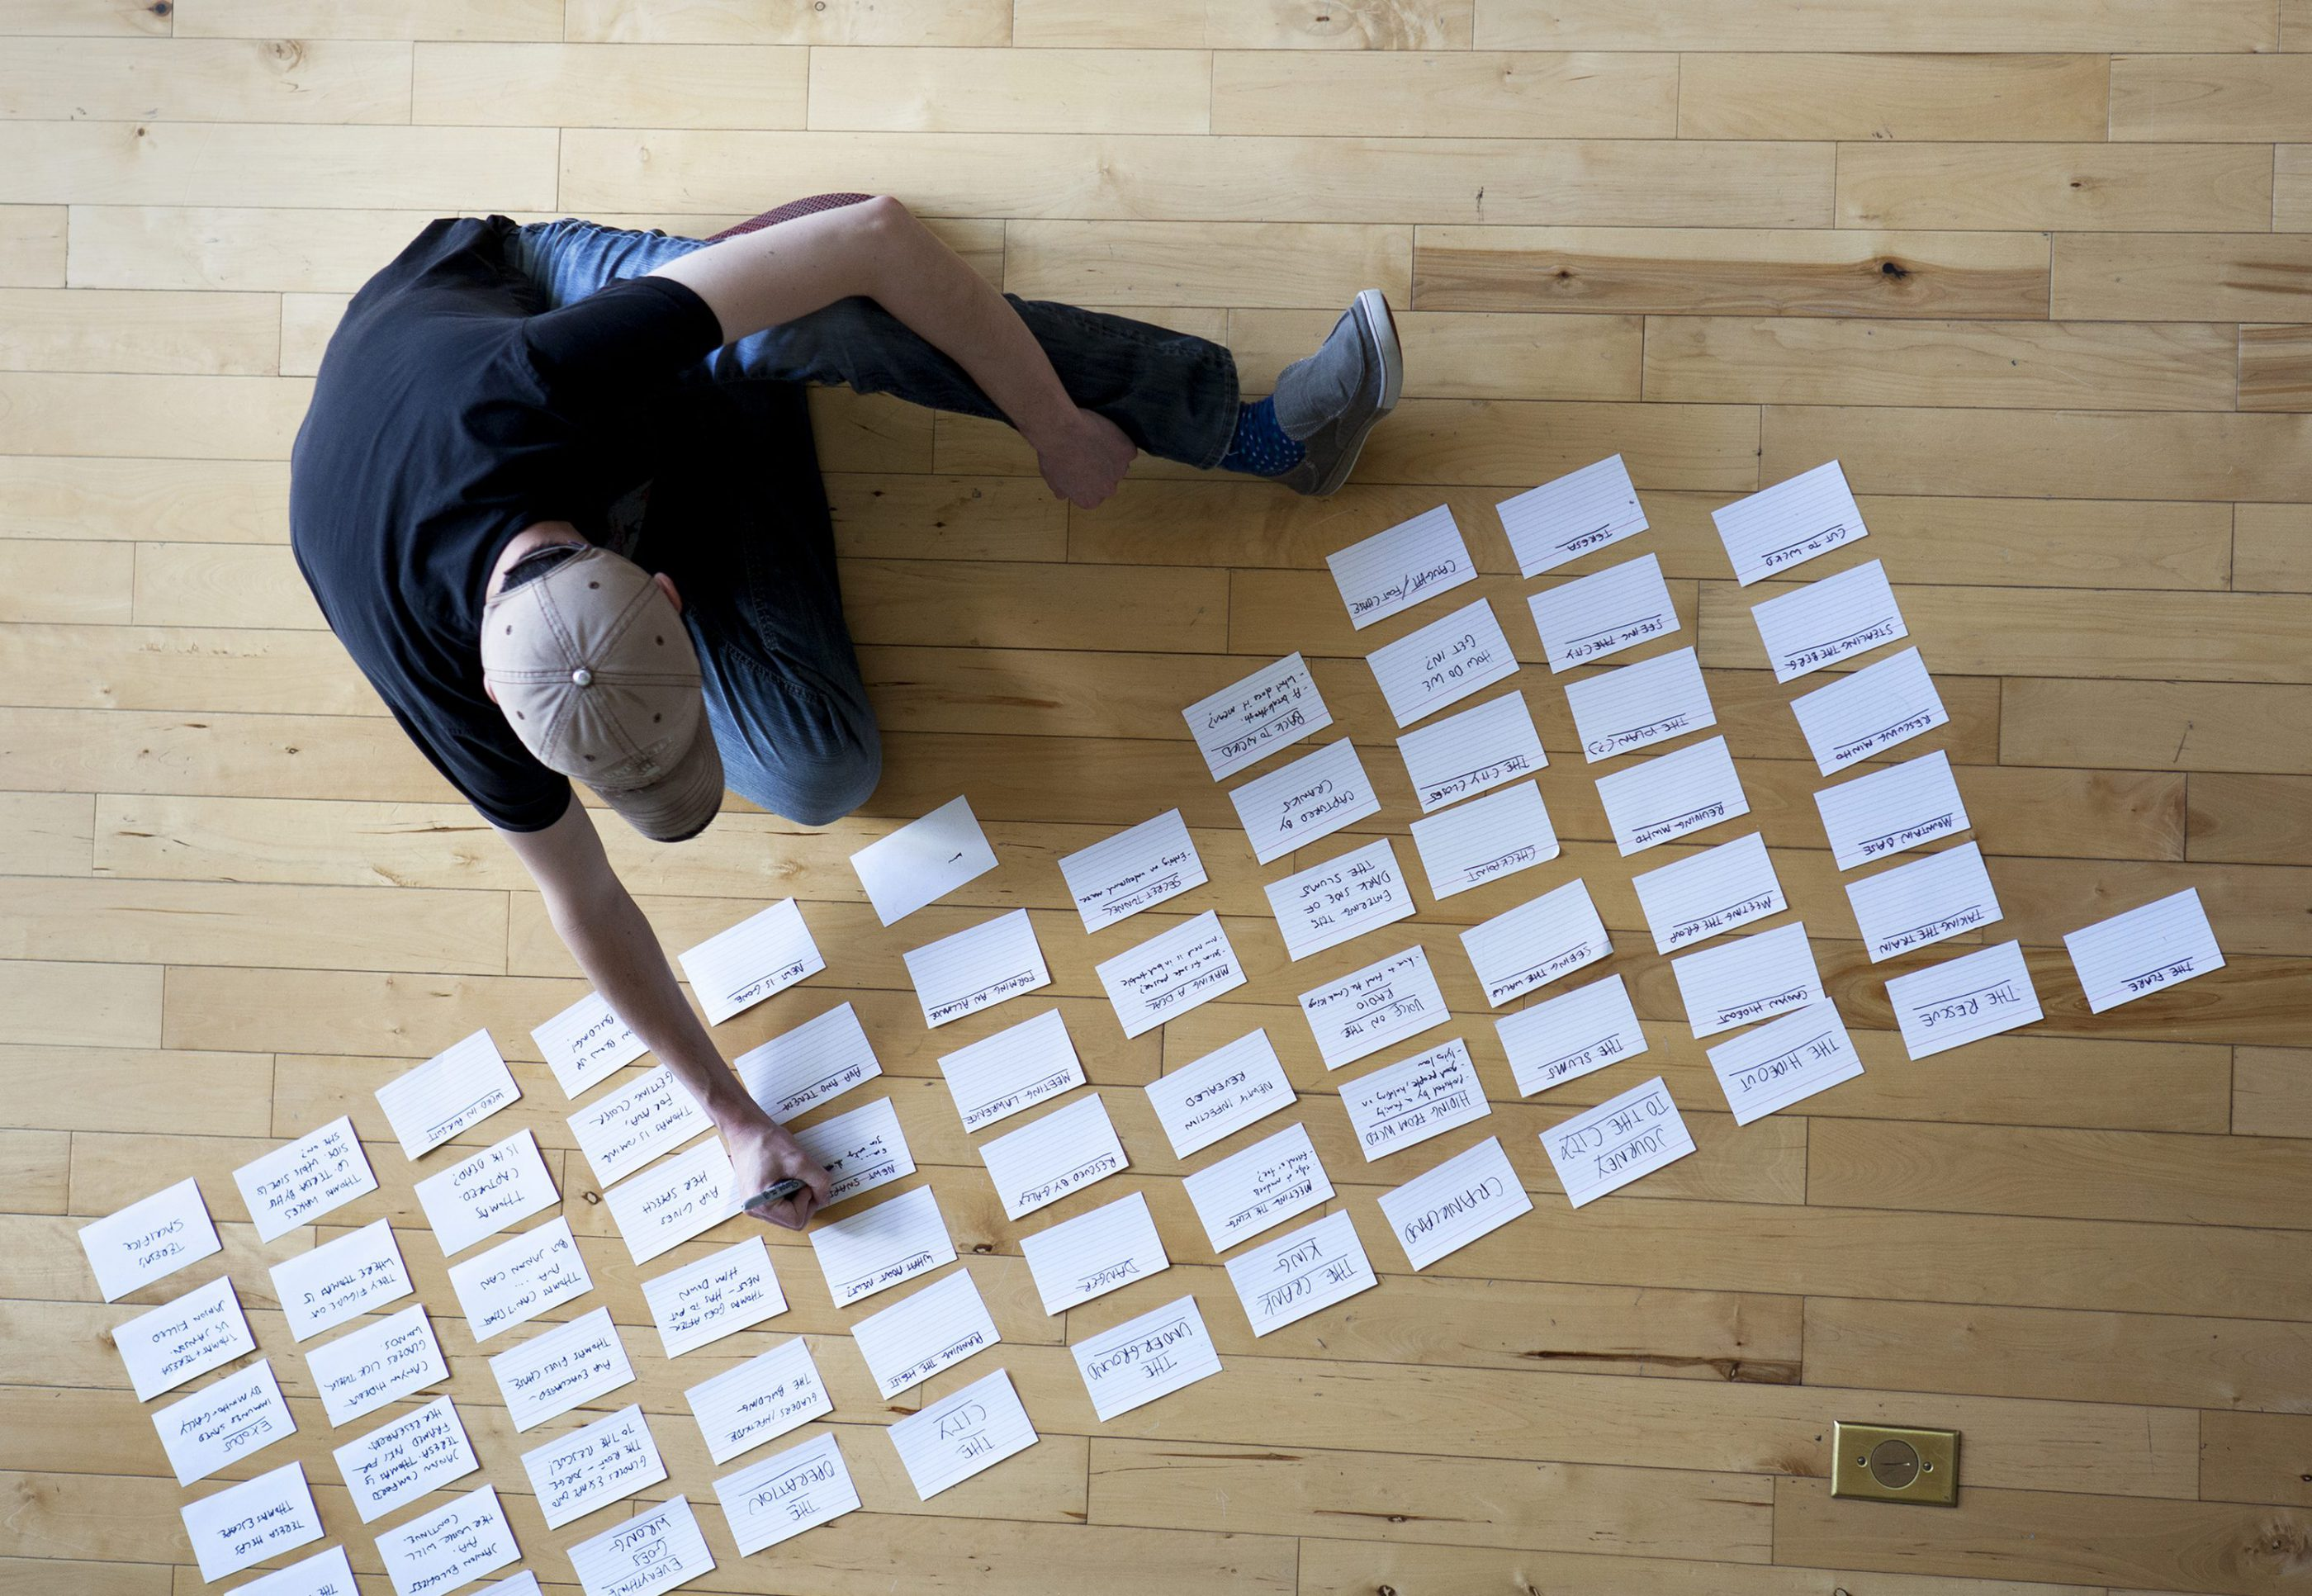 We've been structuring brainstorm sessions all wrong